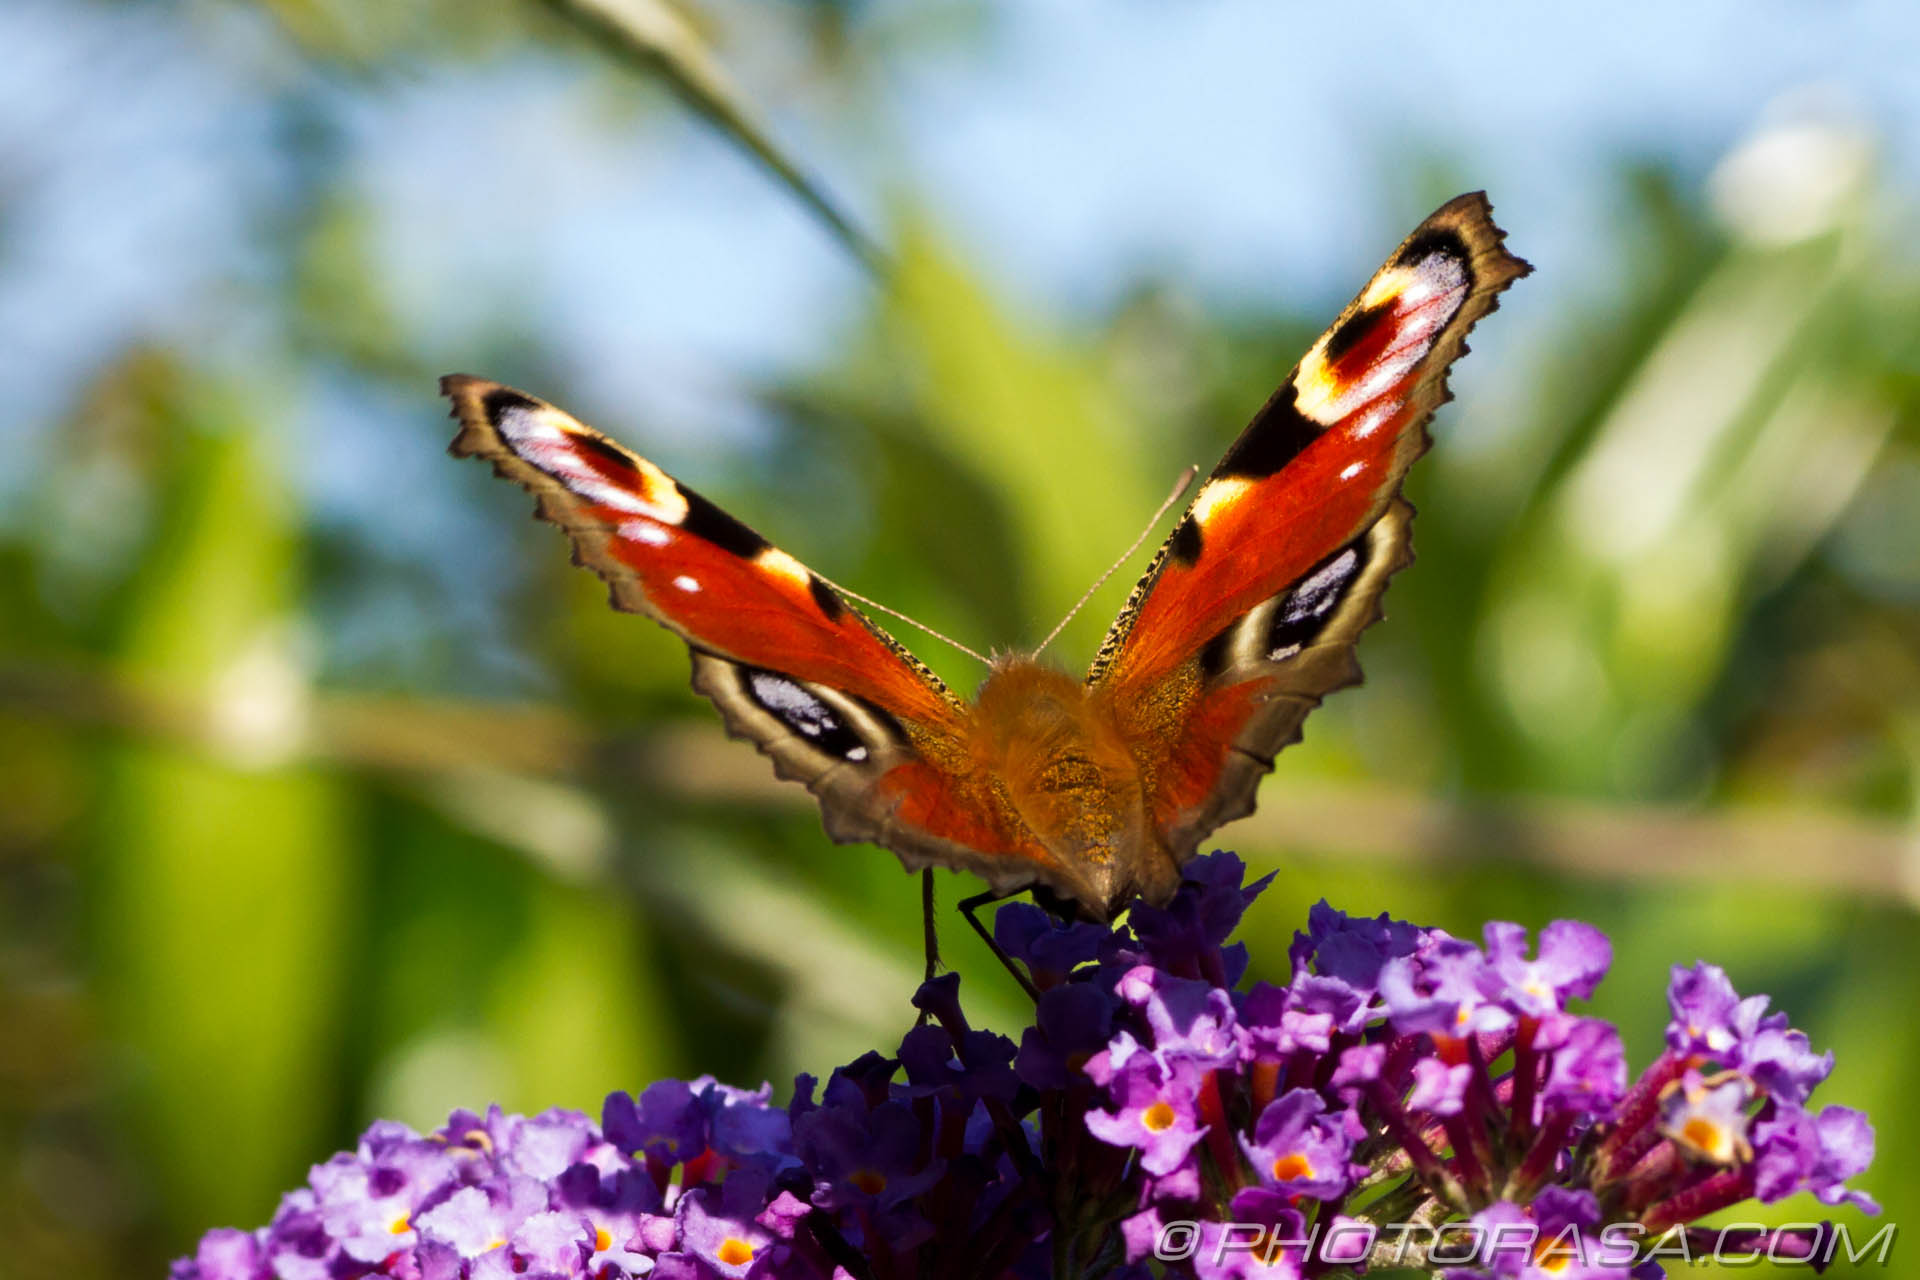 http://photorasa.com/peacock-butterfly/peacock-on-buddliea/